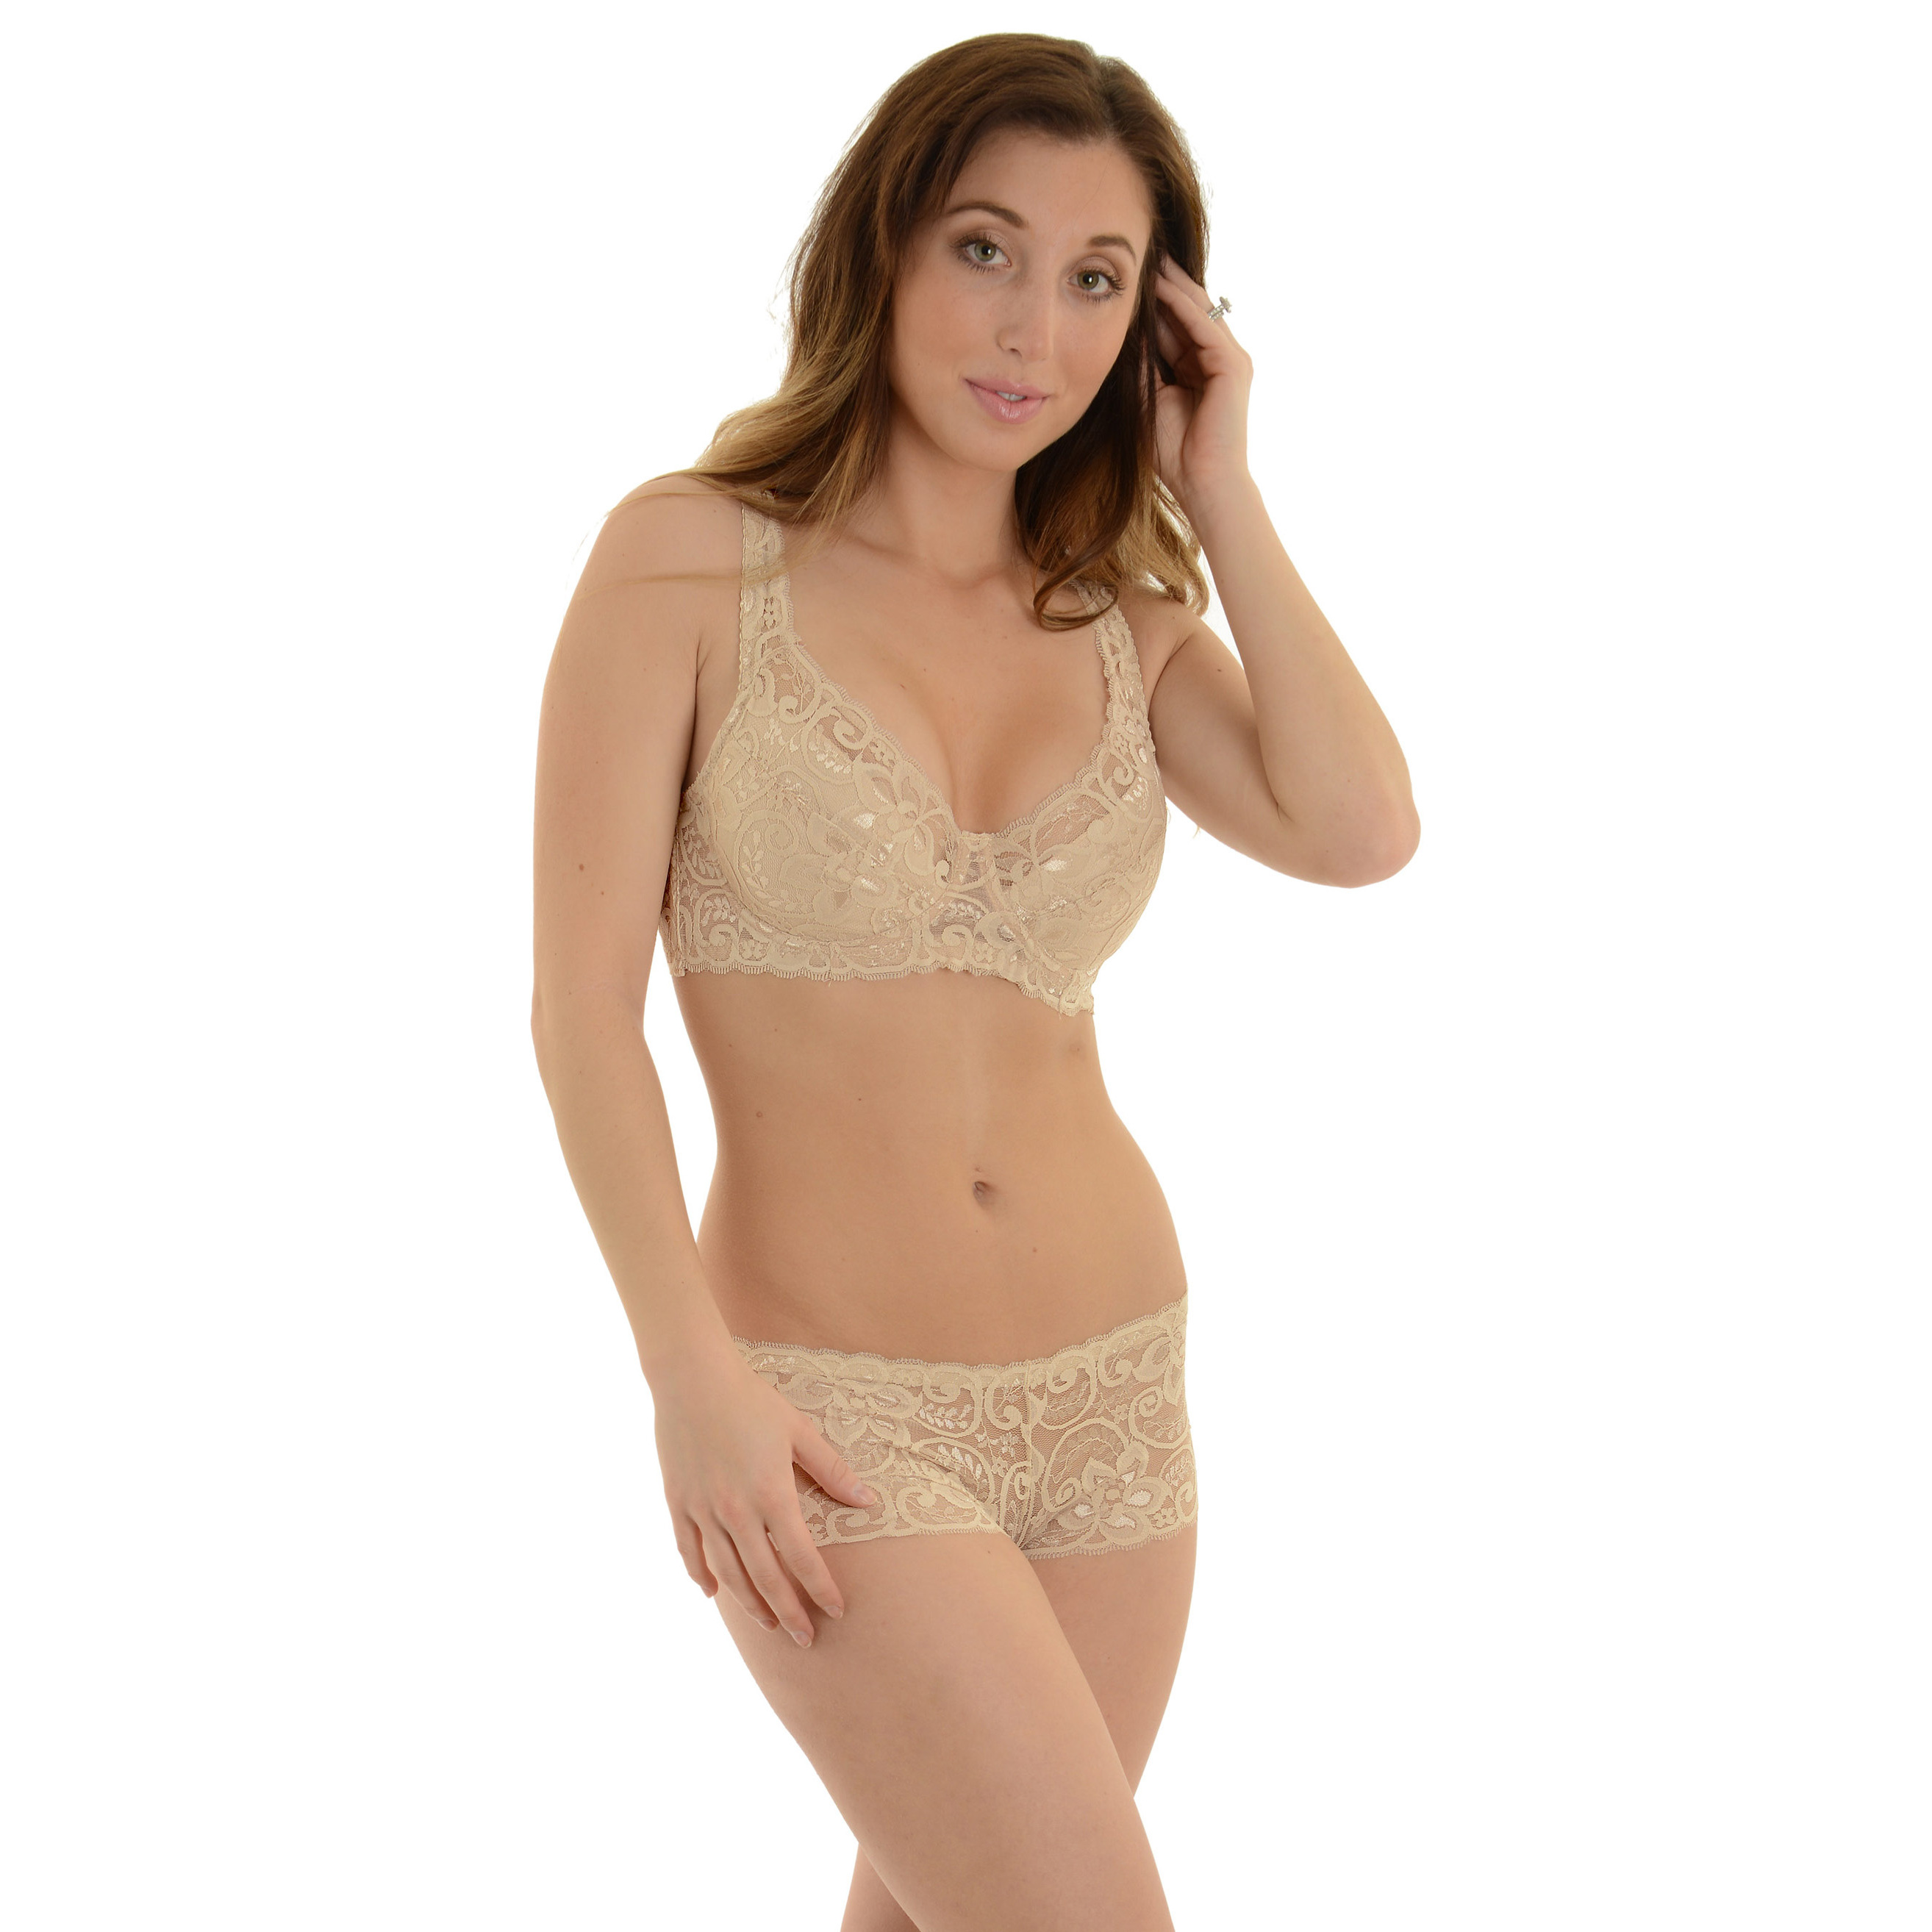 1adfcdb38e242 Carrieamber lined nude lace bra and sheer boyshort panties piece set jpg  2628x2628 Pearl lace bra